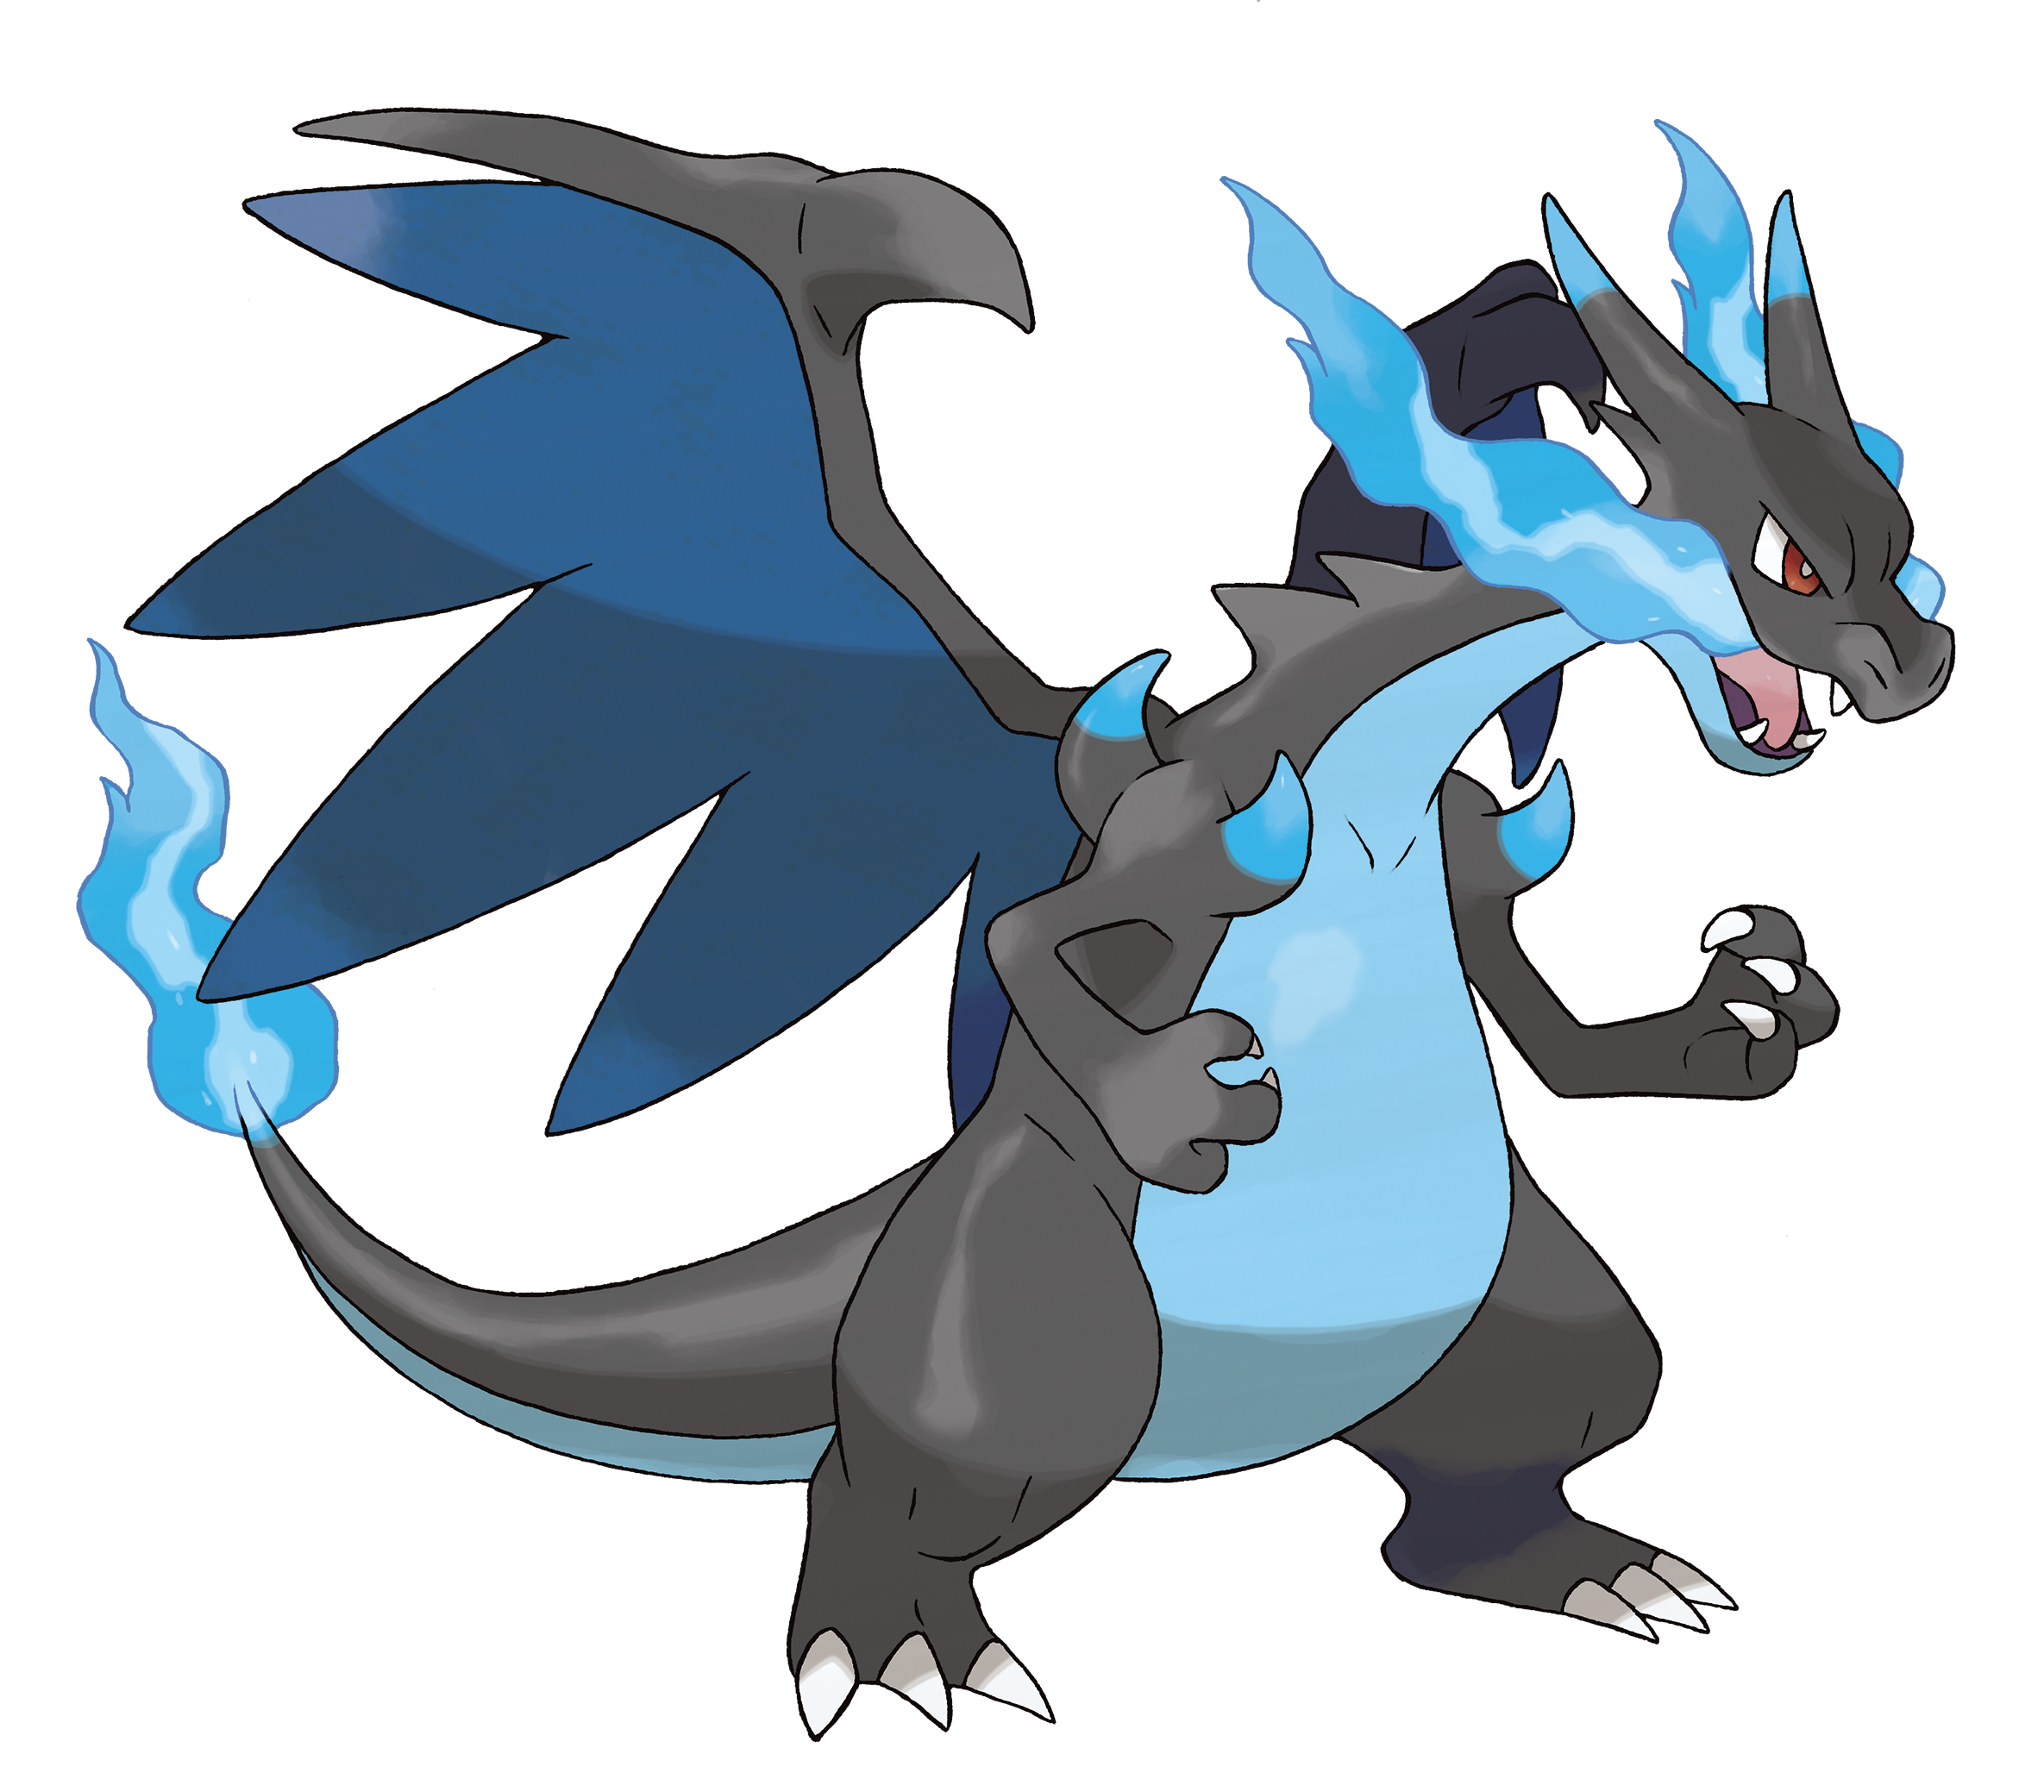 Mega Charizard X_Official Art_300dpi.png